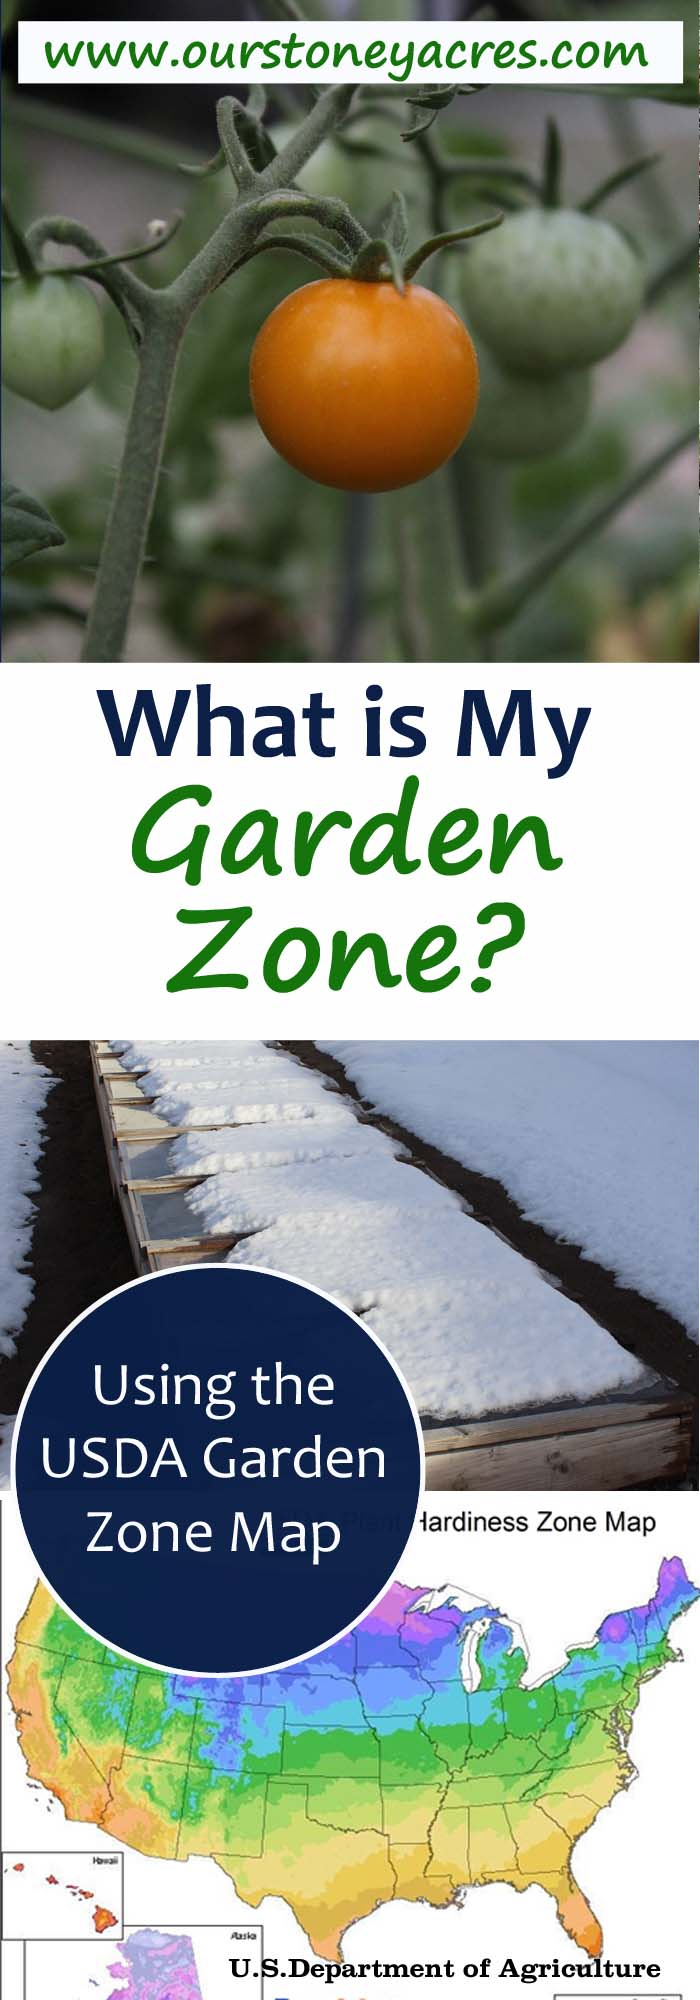 What is My Garden Zone